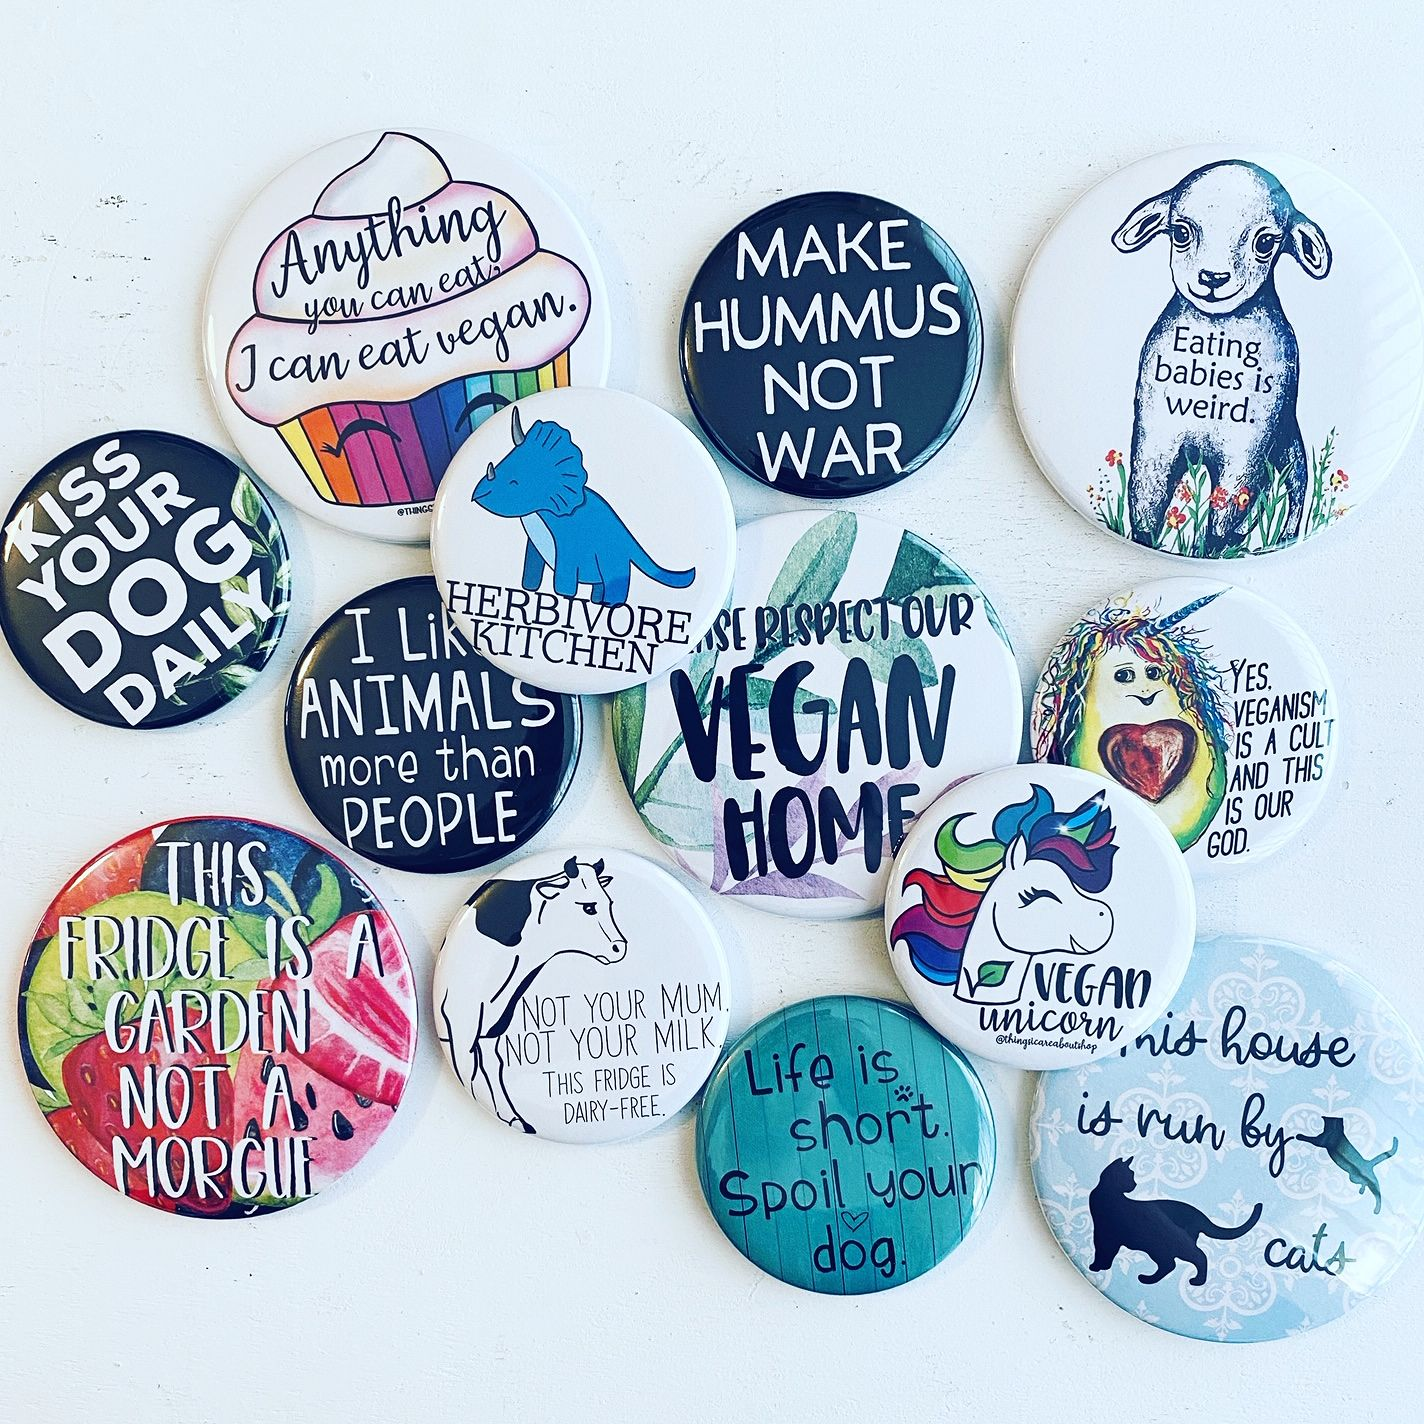 Vegan Fridge Magnet Vegan Magnet Vegan Kitchen Vegan Home